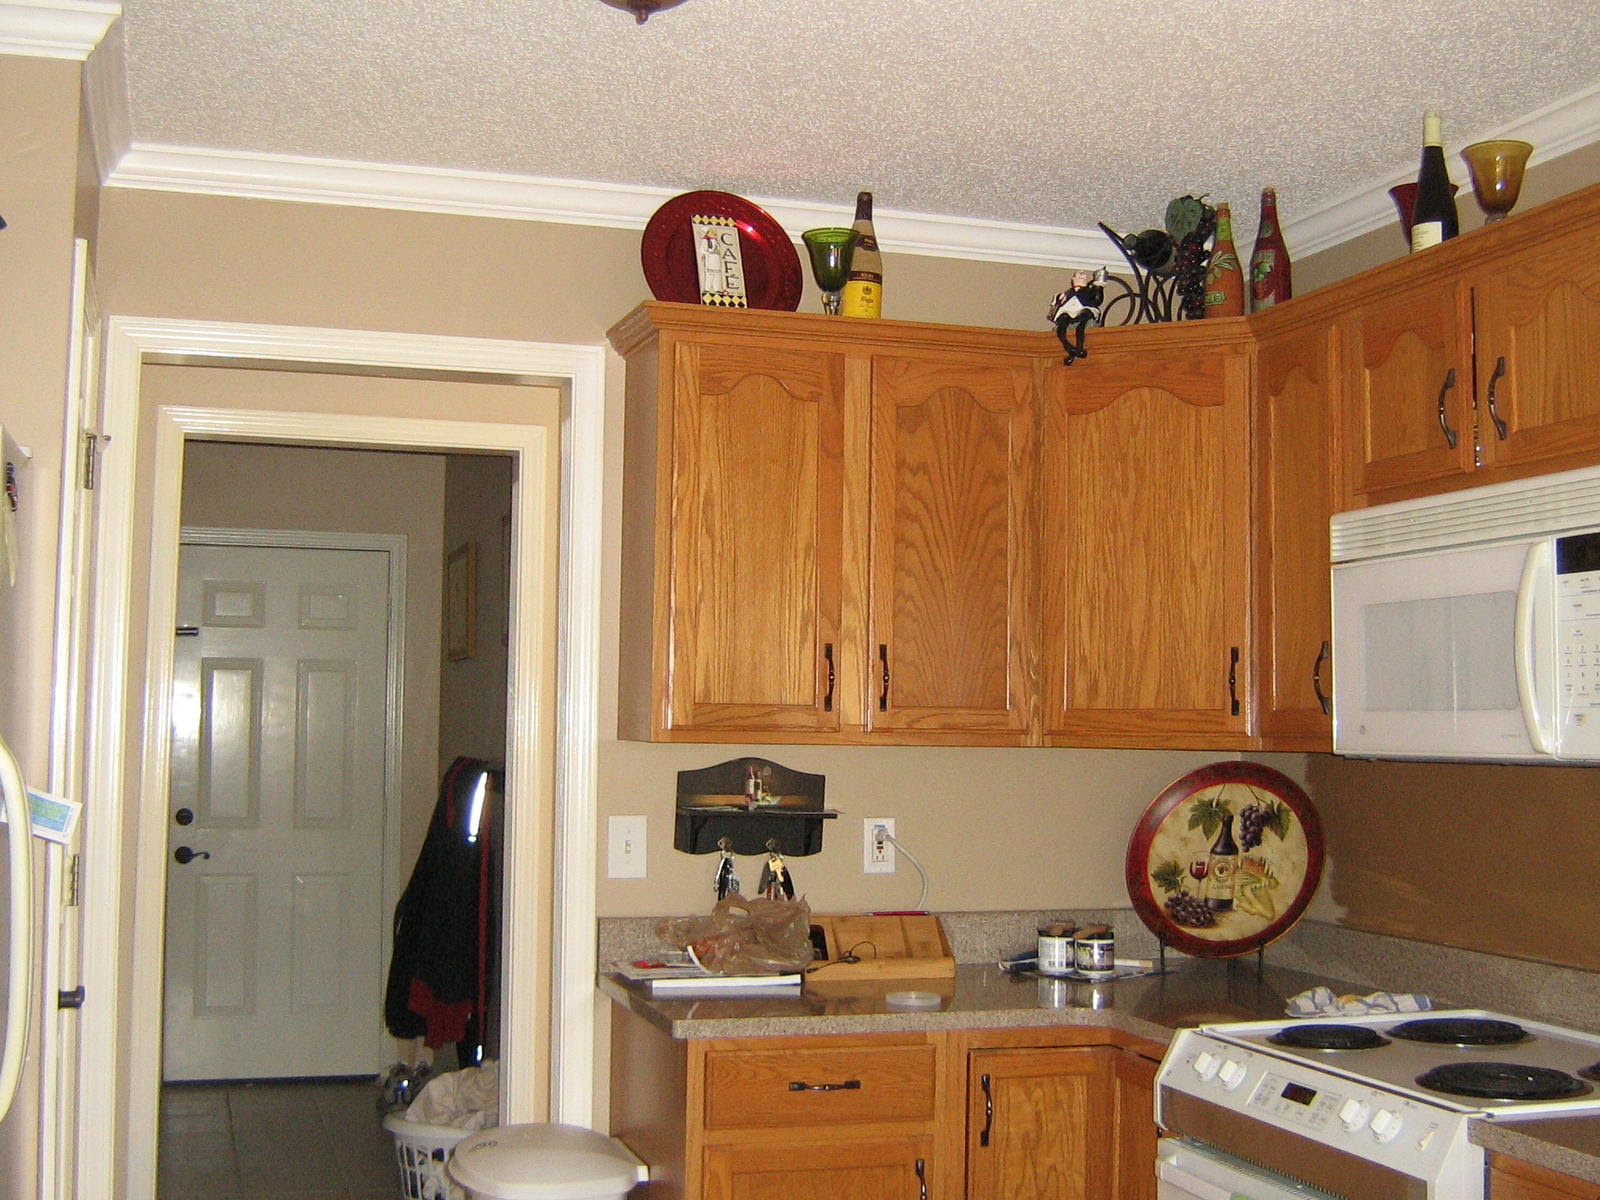 Kitchen Color Schemes With Oak Cabinets Kitchen Paint Colors With Oak Cabinets Apartment